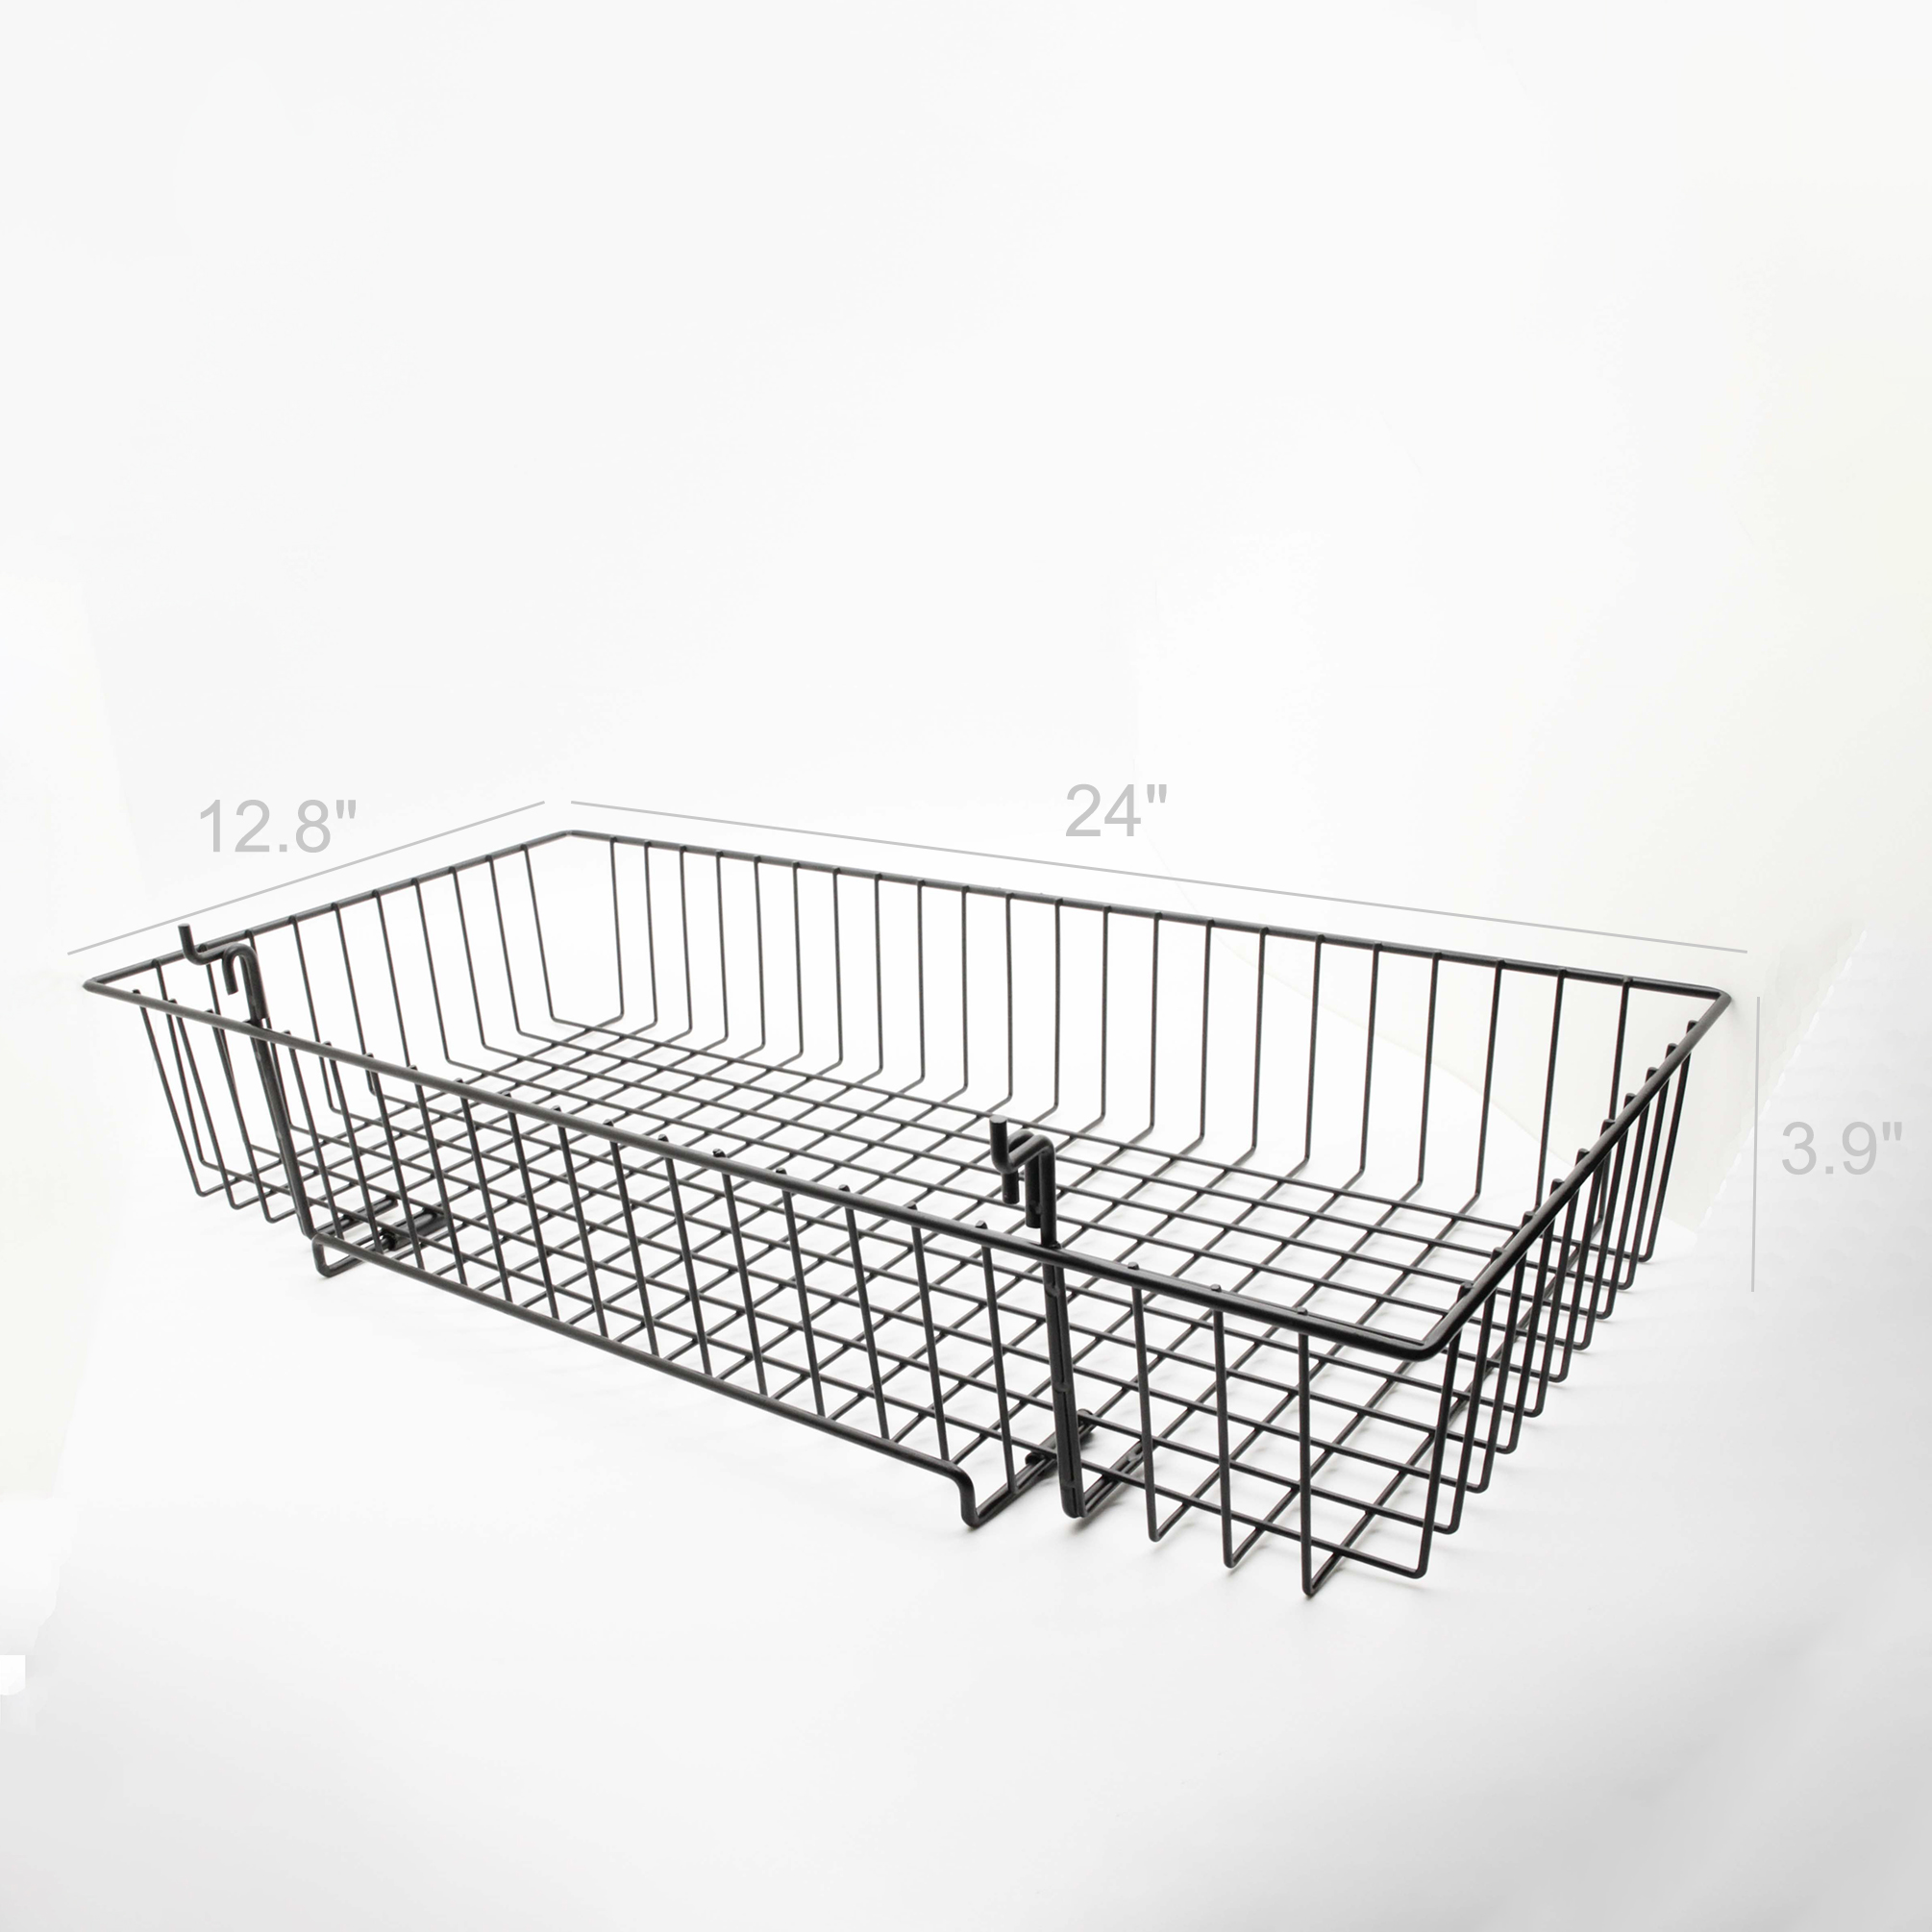 24 x 12 metal gridwall slatwall basket w hooks black119074 ebay. Black Bedroom Furniture Sets. Home Design Ideas